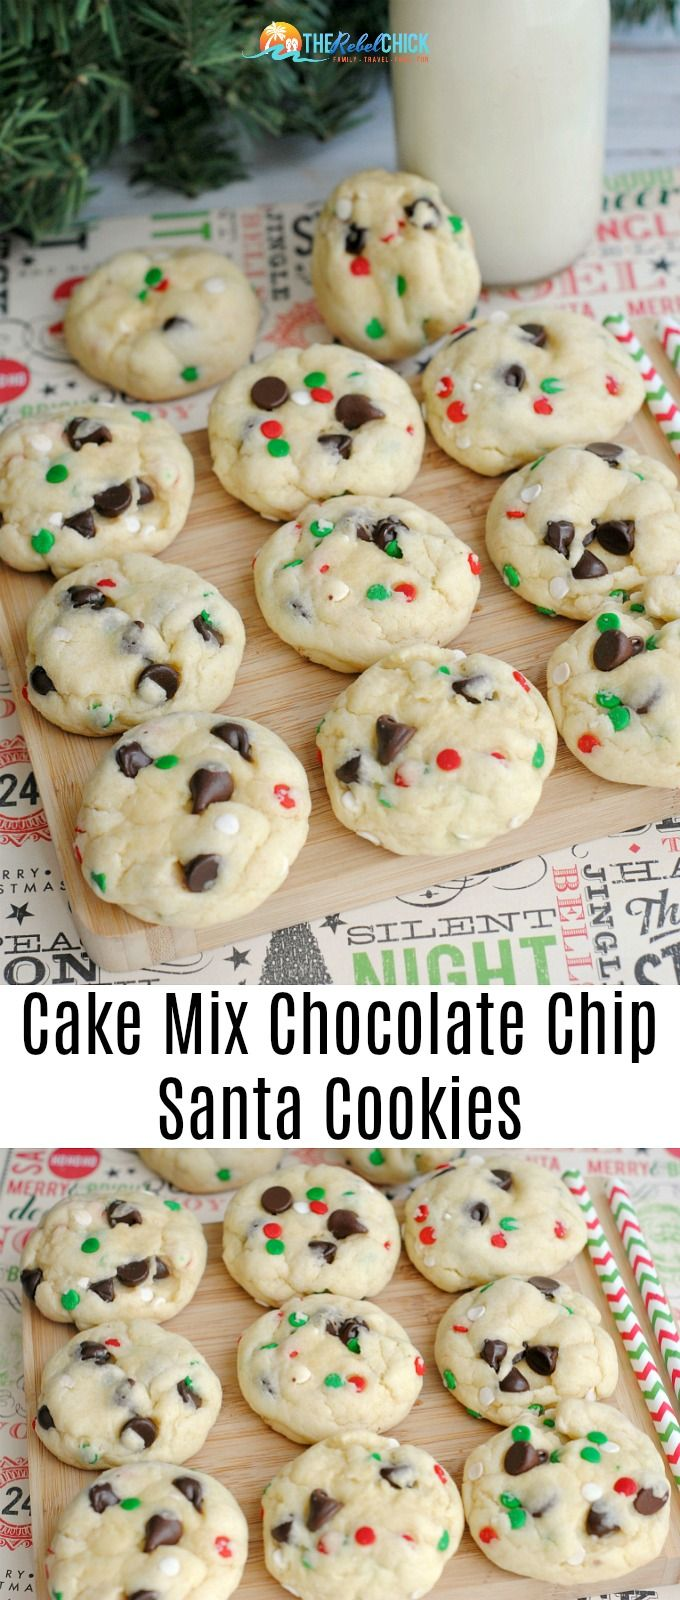 Cake Mix Chocolate Chip Santa Cookies Recipe #christmas